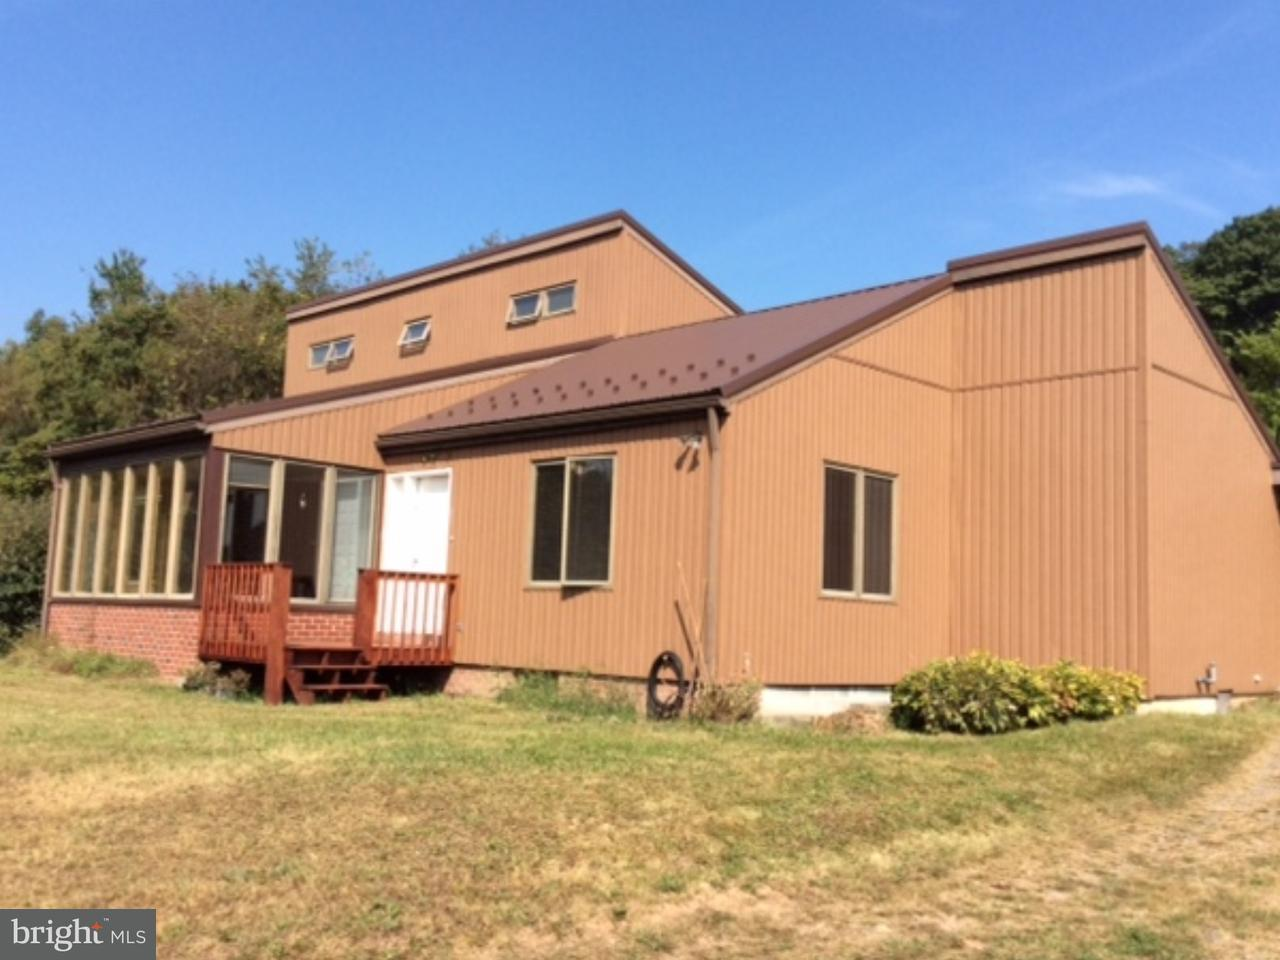 Single Family Home for Sale at 134 SPARROW Lane Pottsville, Pennsylvania 17901 United States